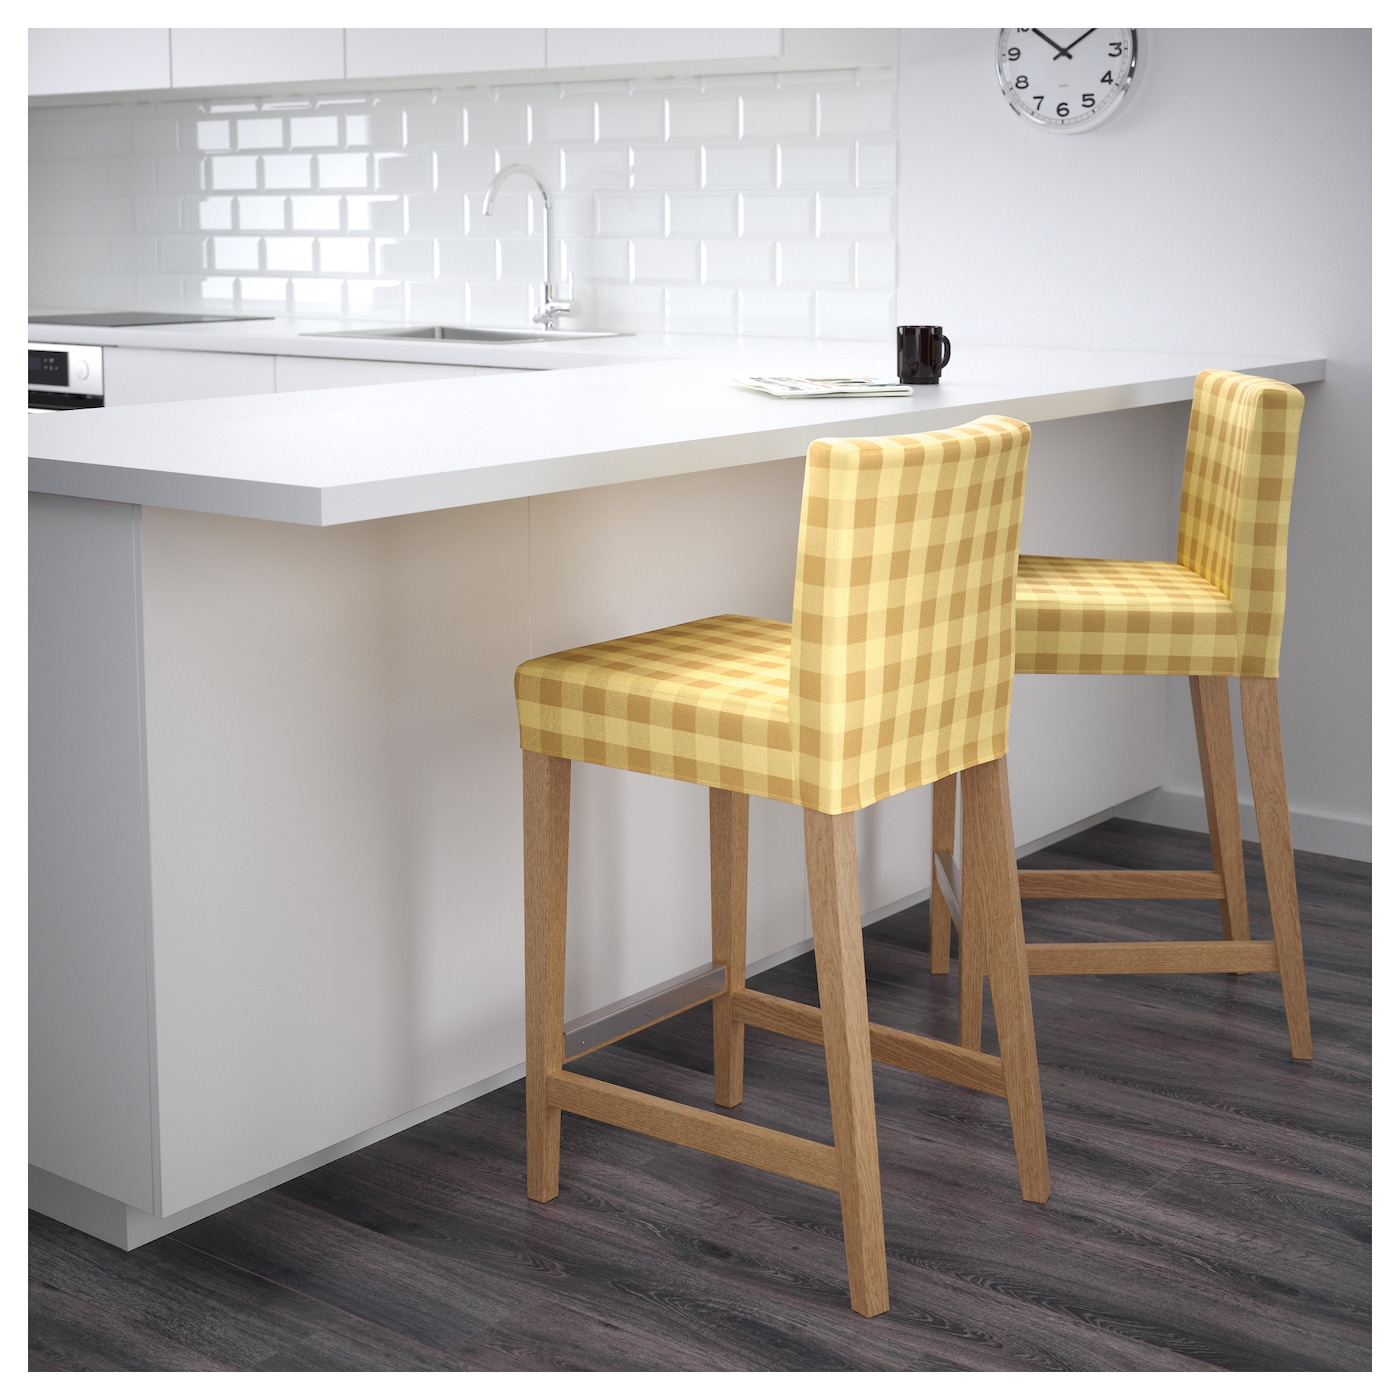 #987A34 HENRIKSDAL Bar Stool With Backrest Oak/skaftarp Yellow 63  with 2000x2000 px of Most Effective Ikea Wooden Stools 20002000 wallpaper @ avoidforclosure.info